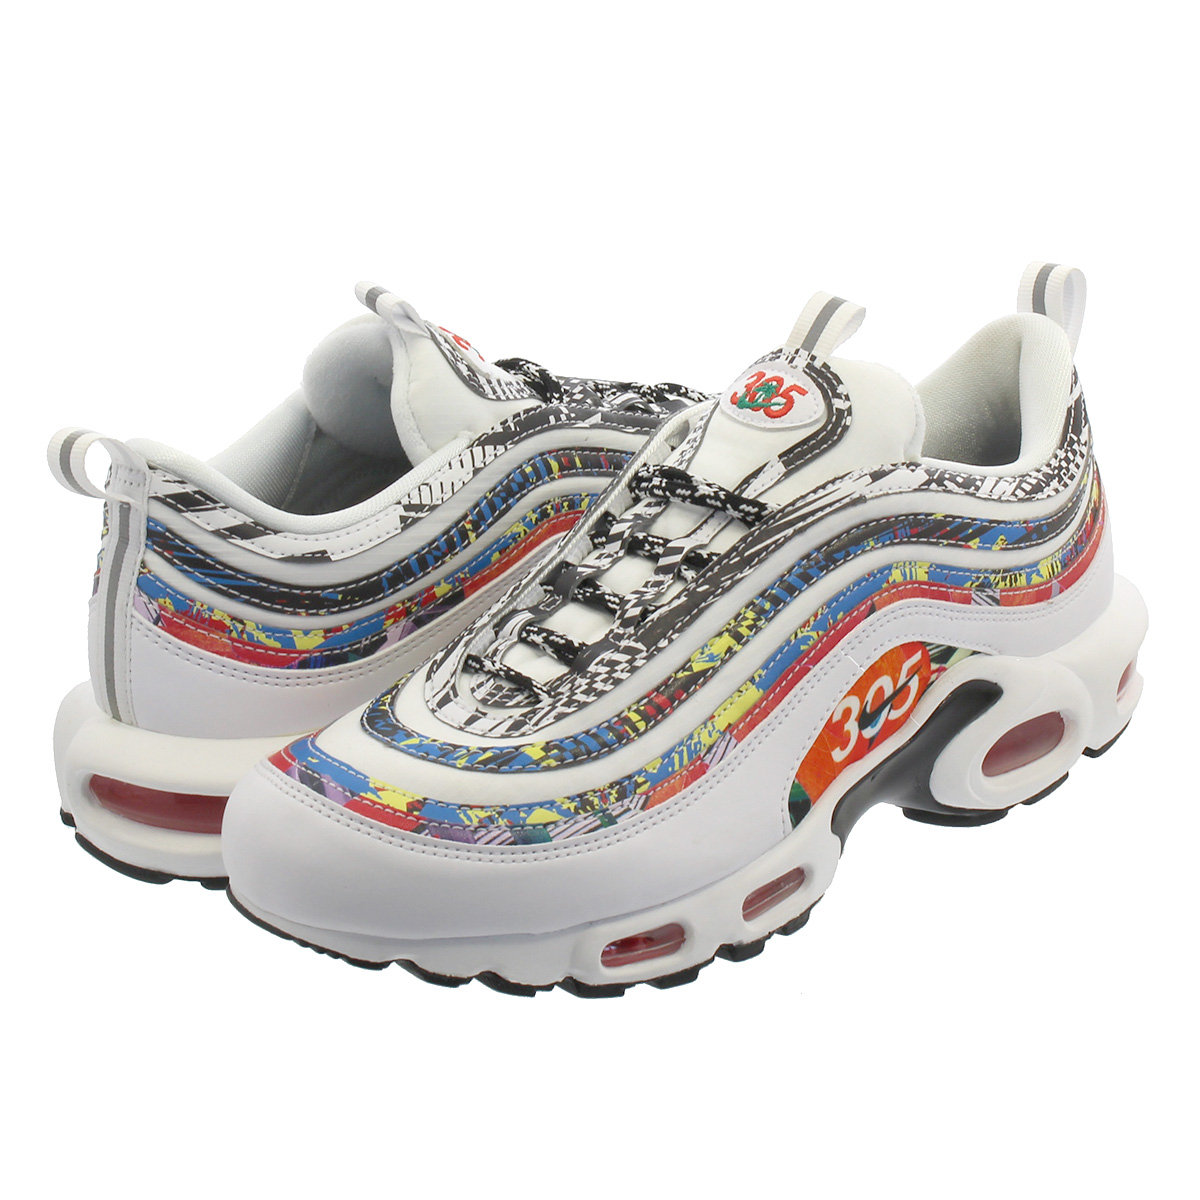 7b3813c592 SELECT SHOP LOWTEX: NIKE AIR MAX PLUS 97 Kie Ney AMAX +97 WHITE ...